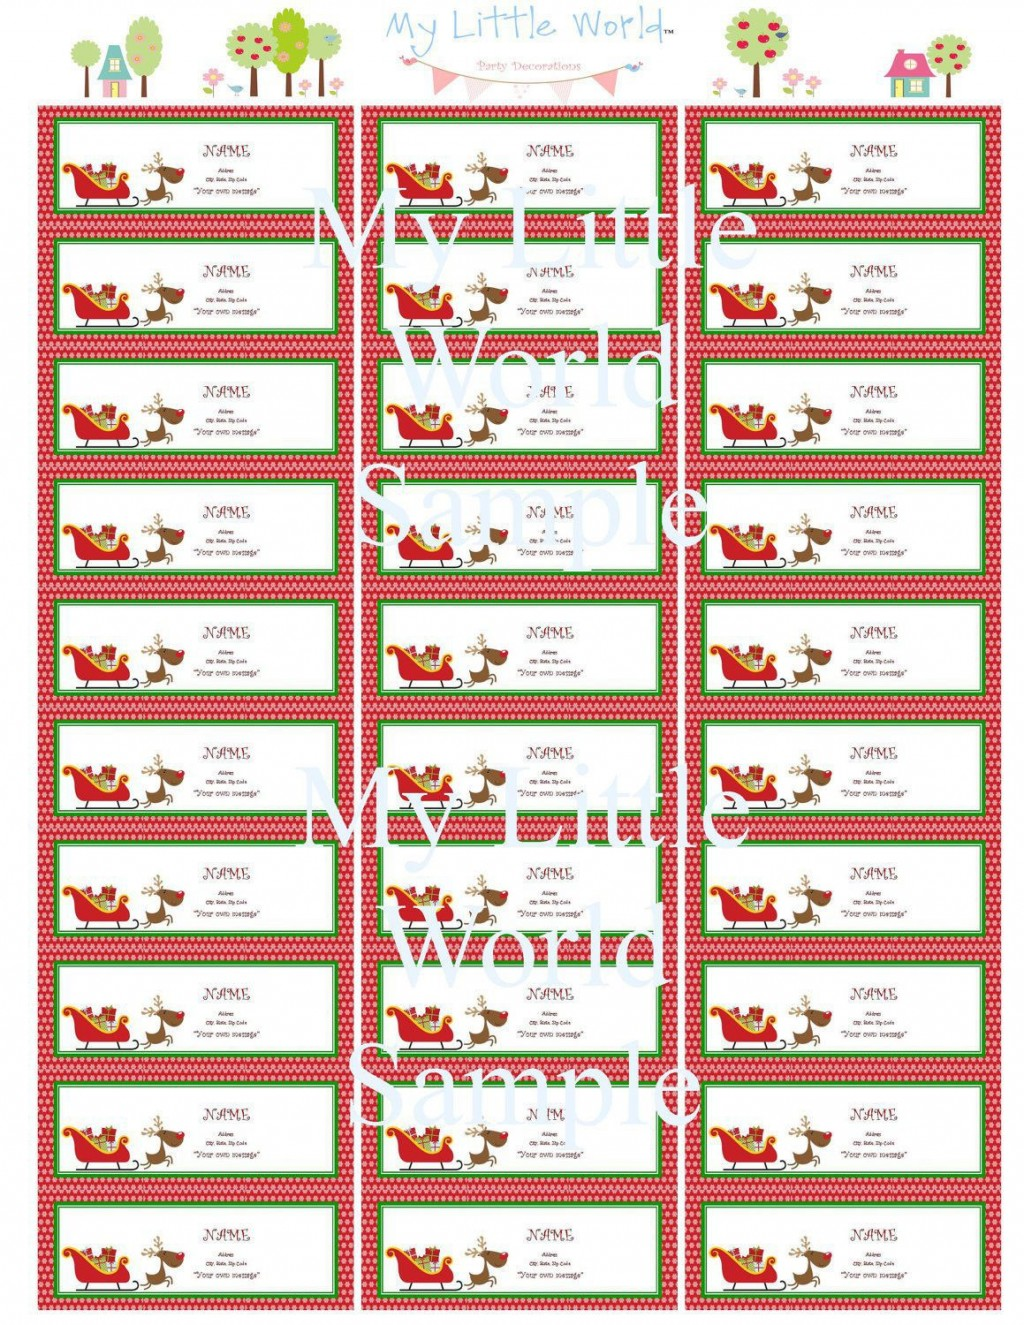 009 Surprising Free Christma Addres Label Template Avery 5160 High Def Large